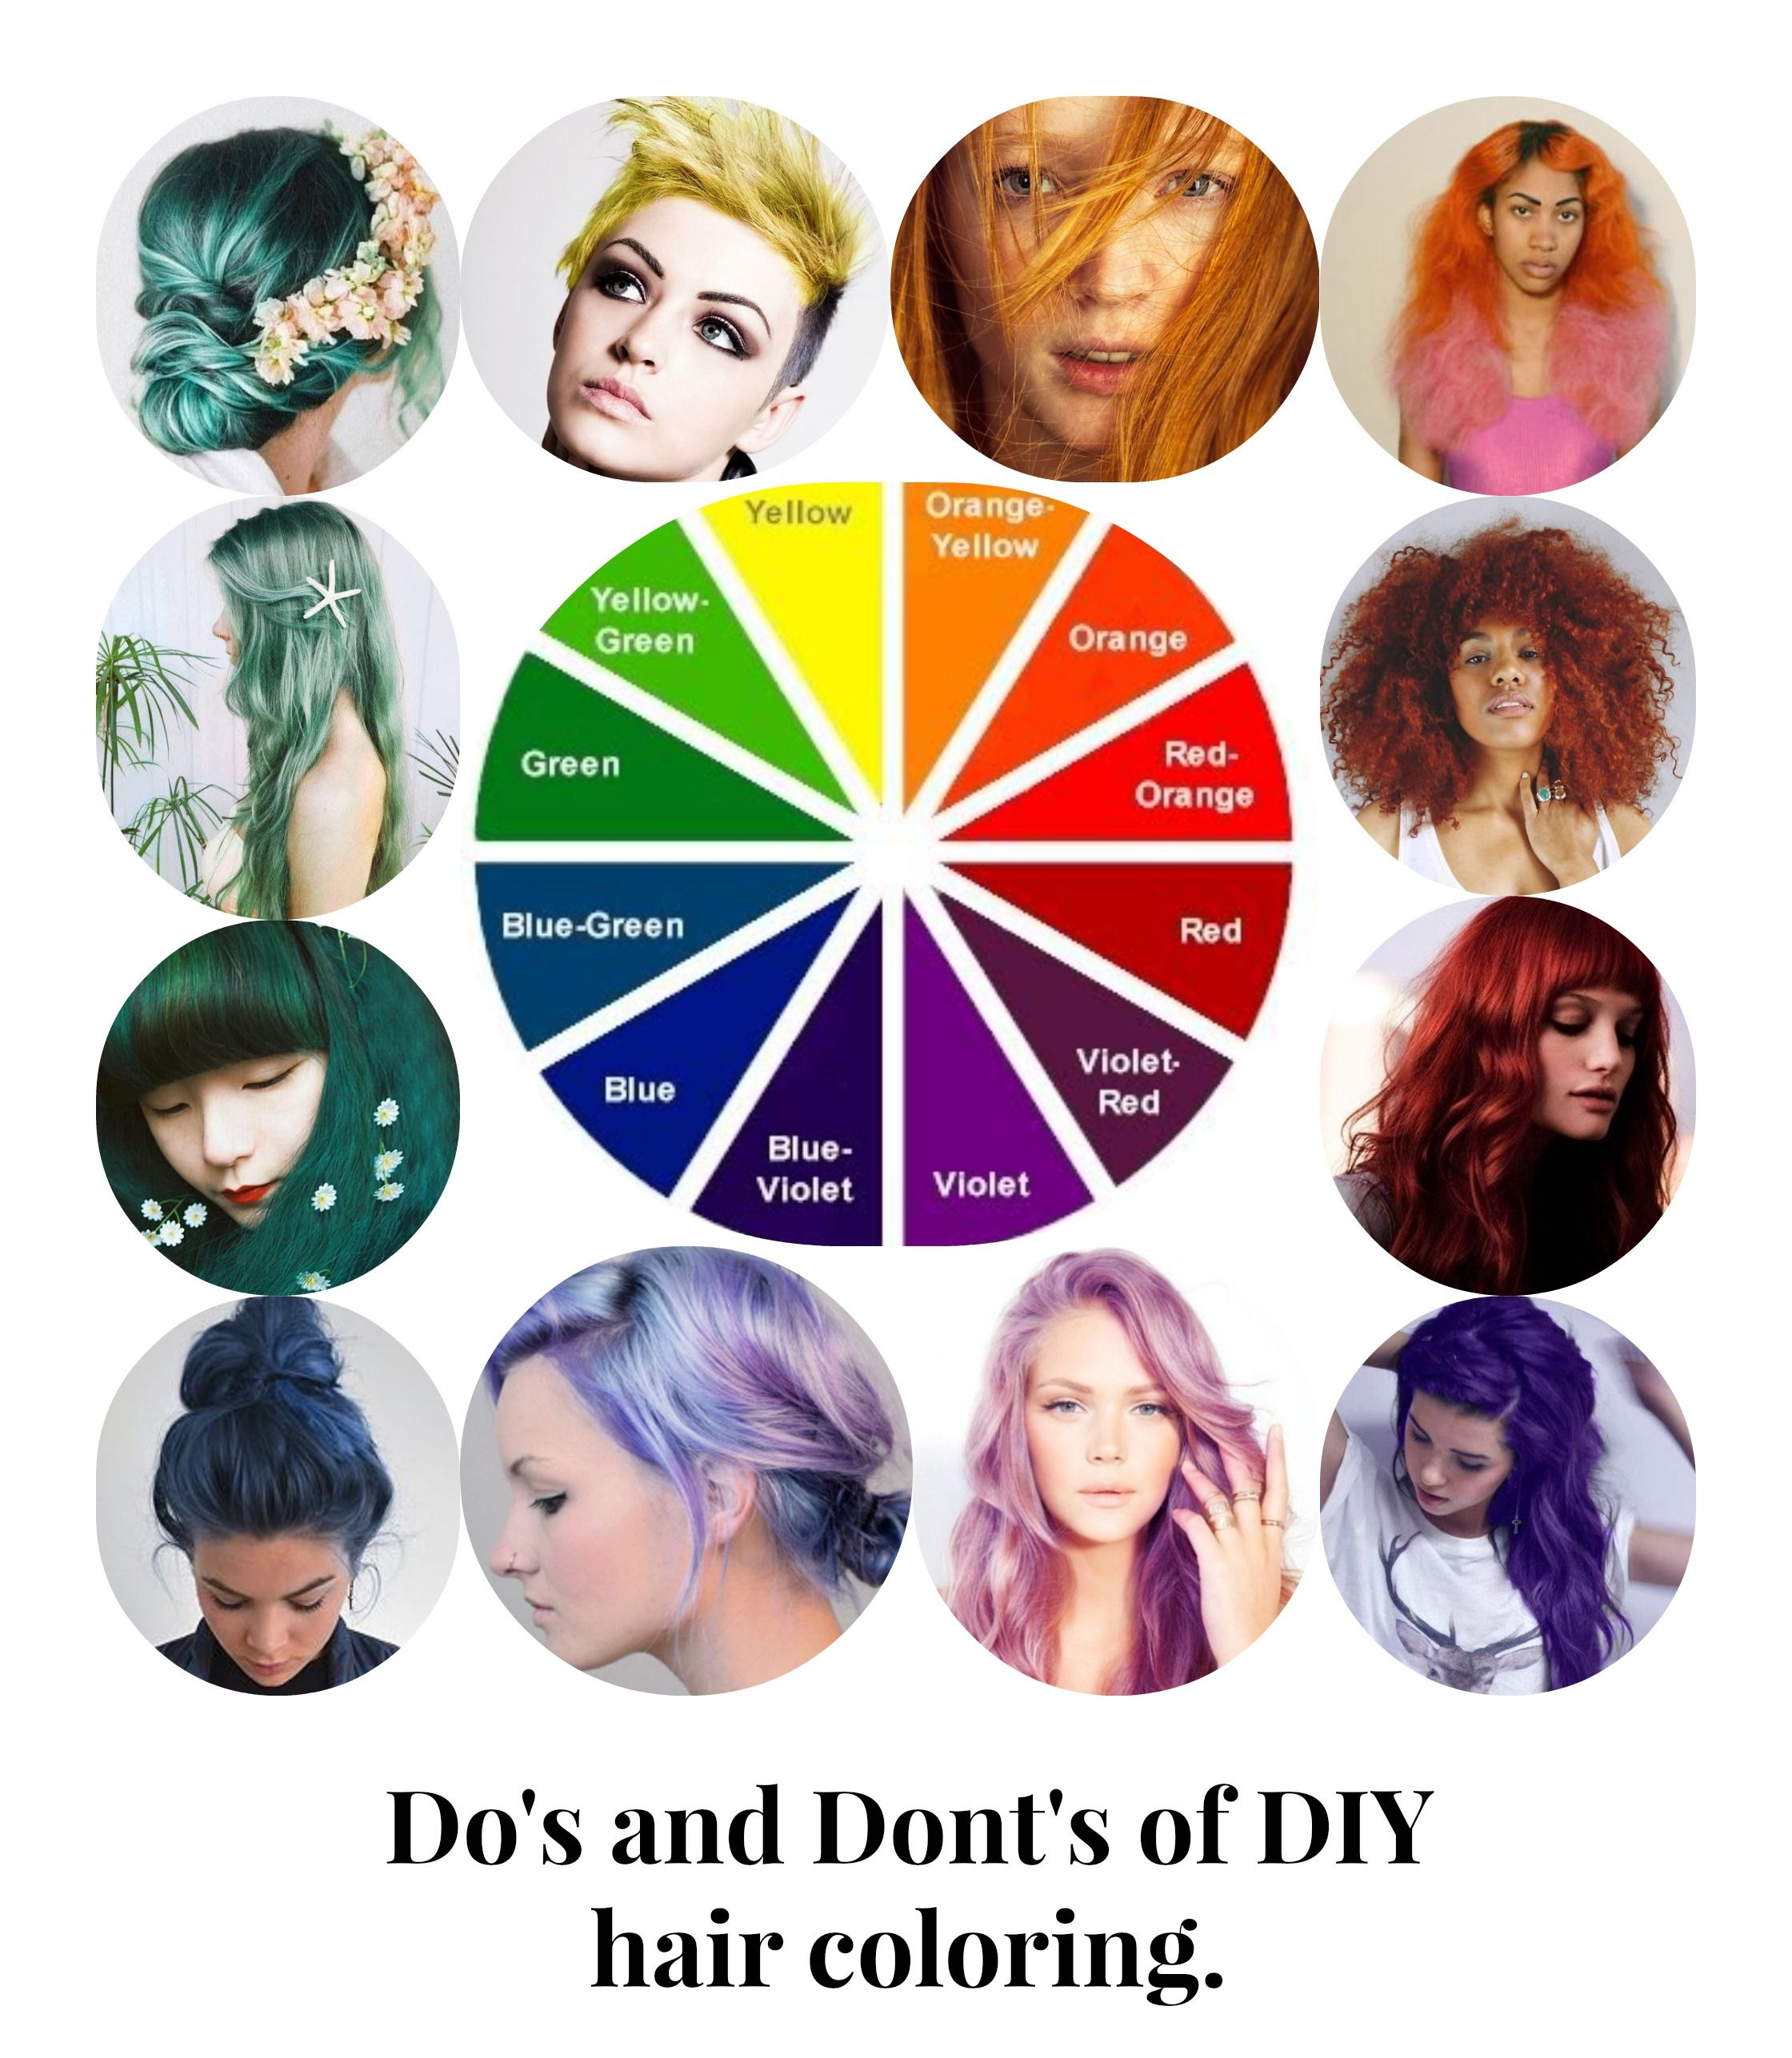 dos and dont\'s of diy hair coloring | coiffe | Pinterest | Diy ...